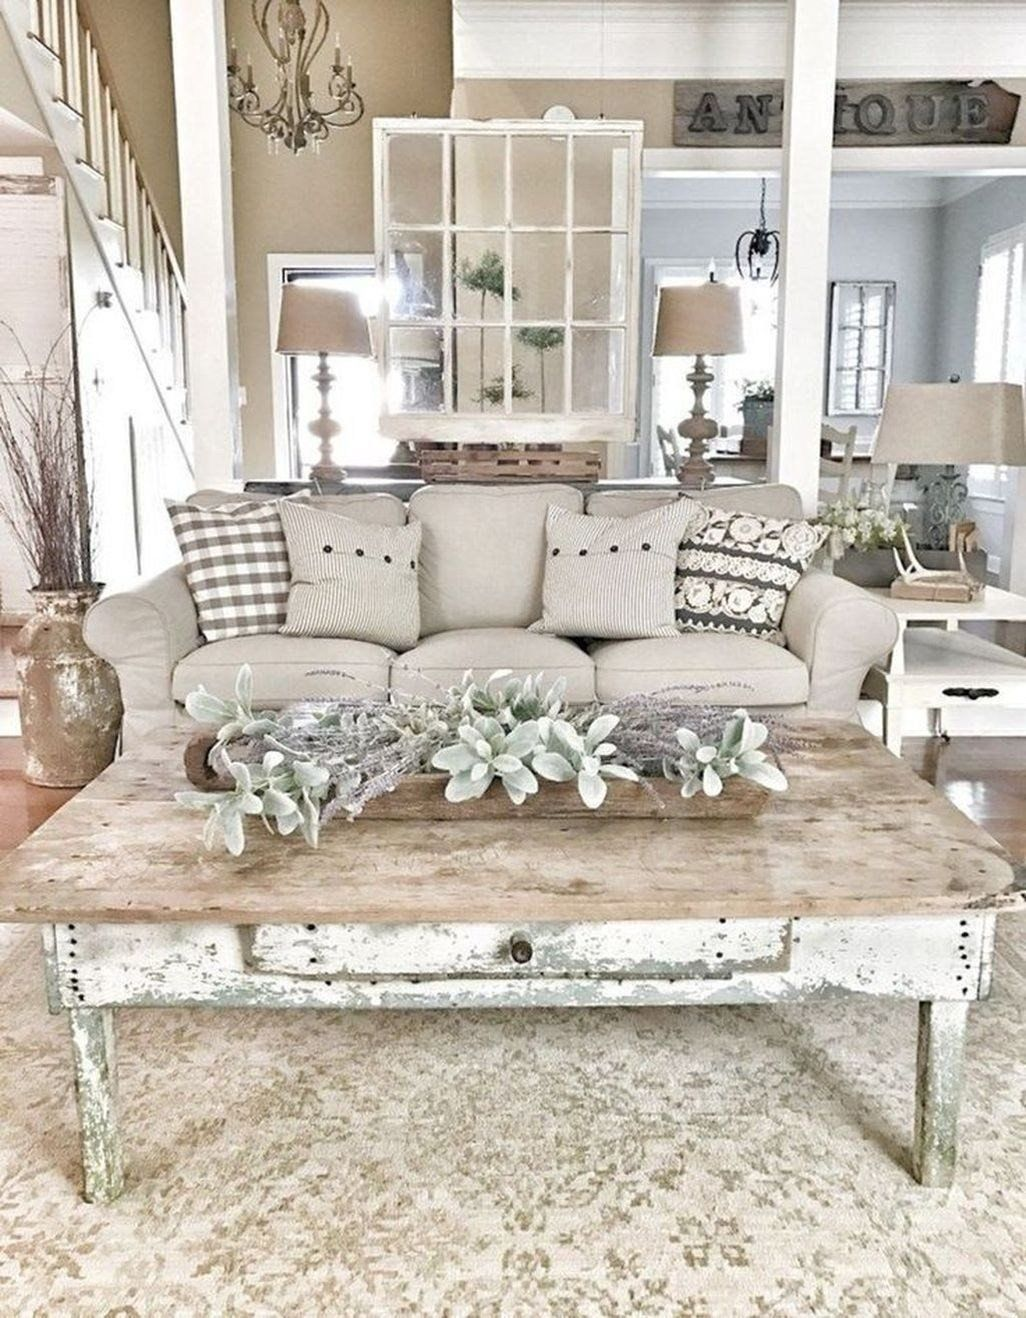 Pin On Living Room Furniture Image Ideas